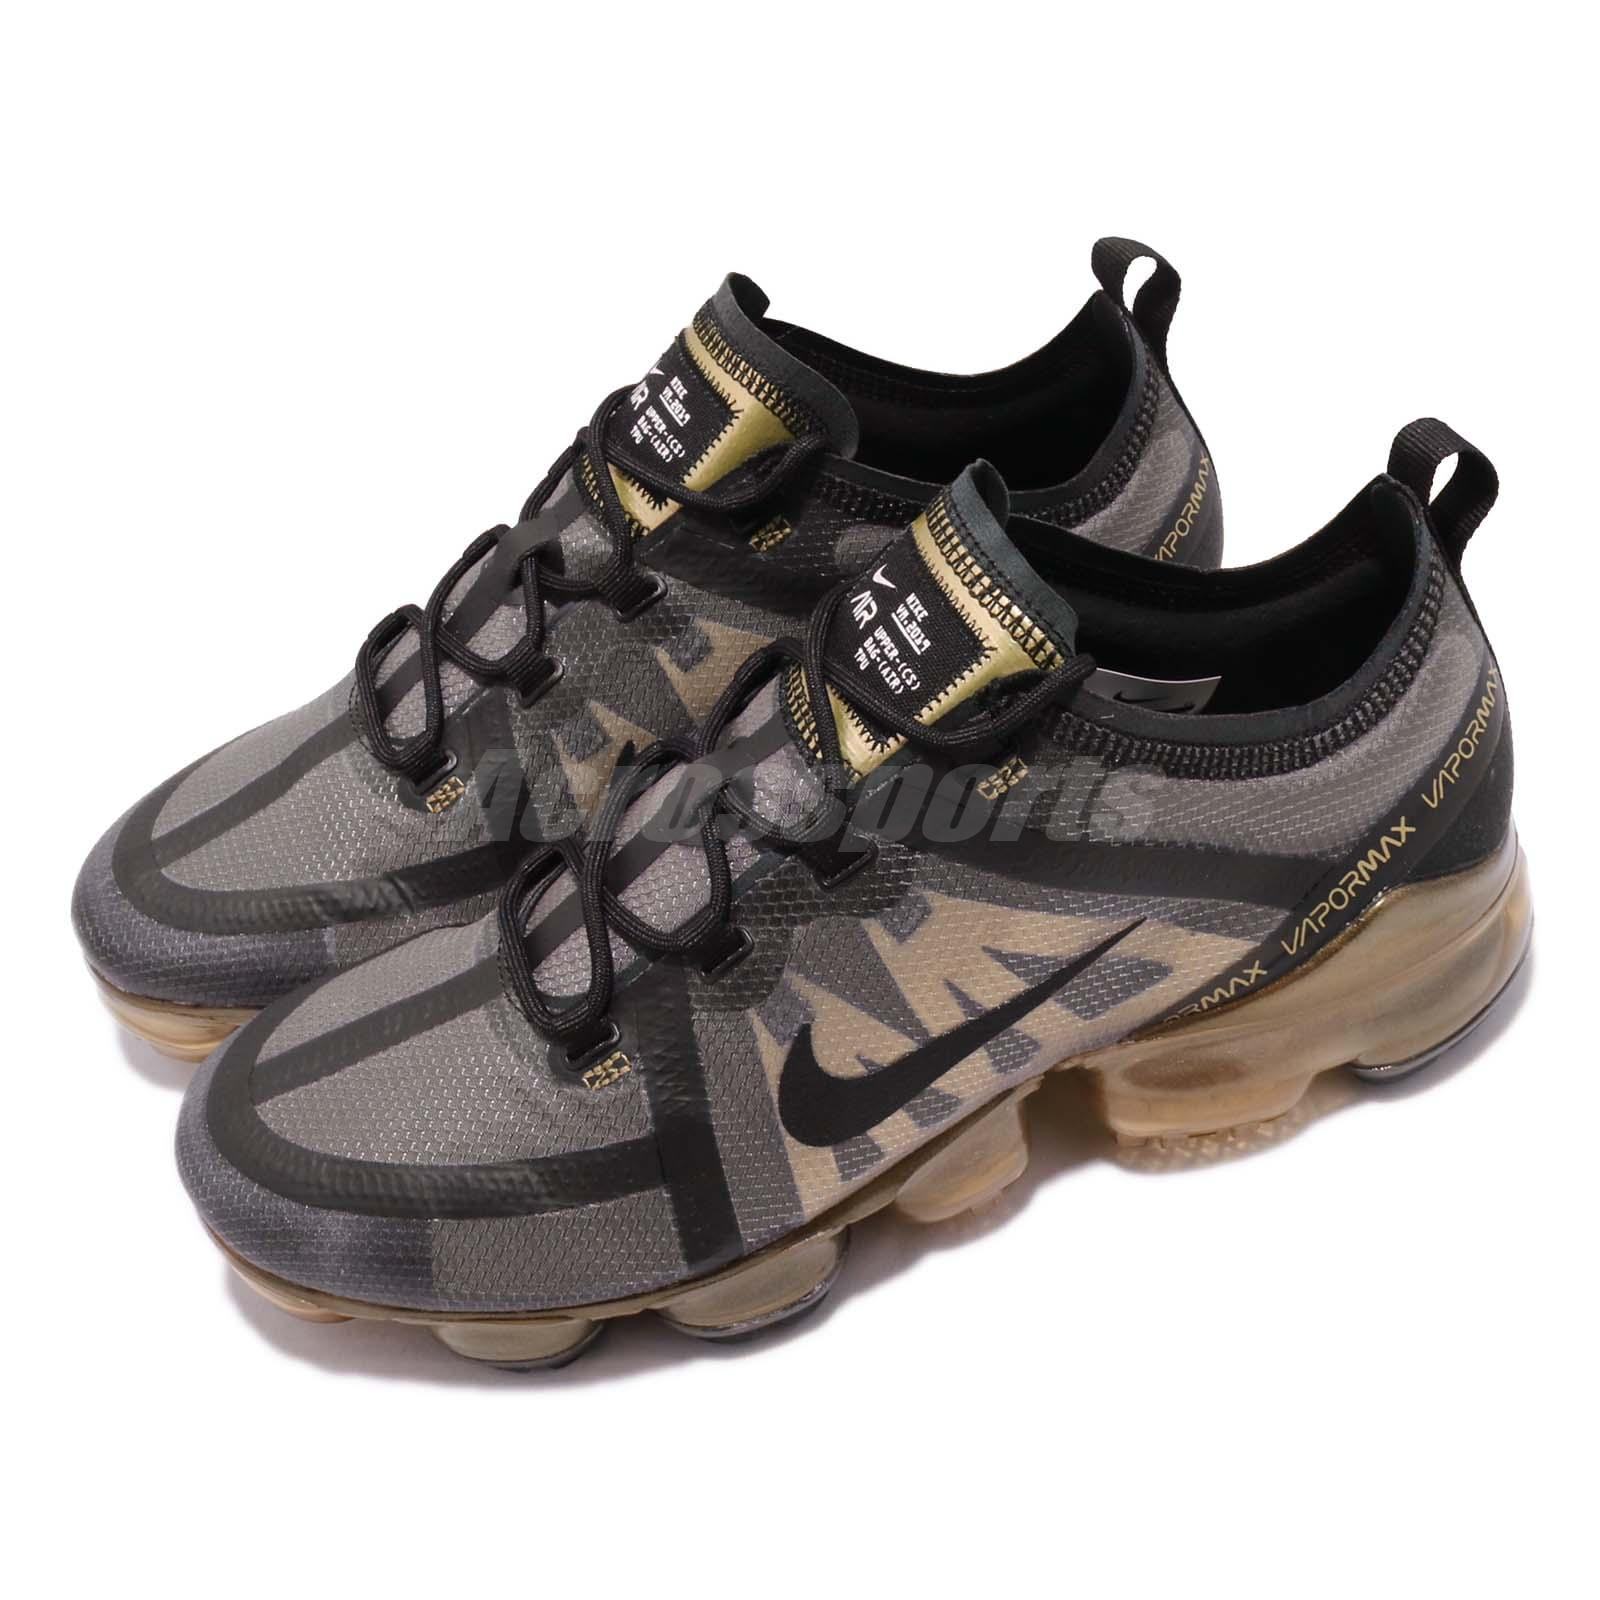 Details about Nike Air Vapormax 2019 Black Gold Max Mens Running Shoes  Sneakers AR6631,002